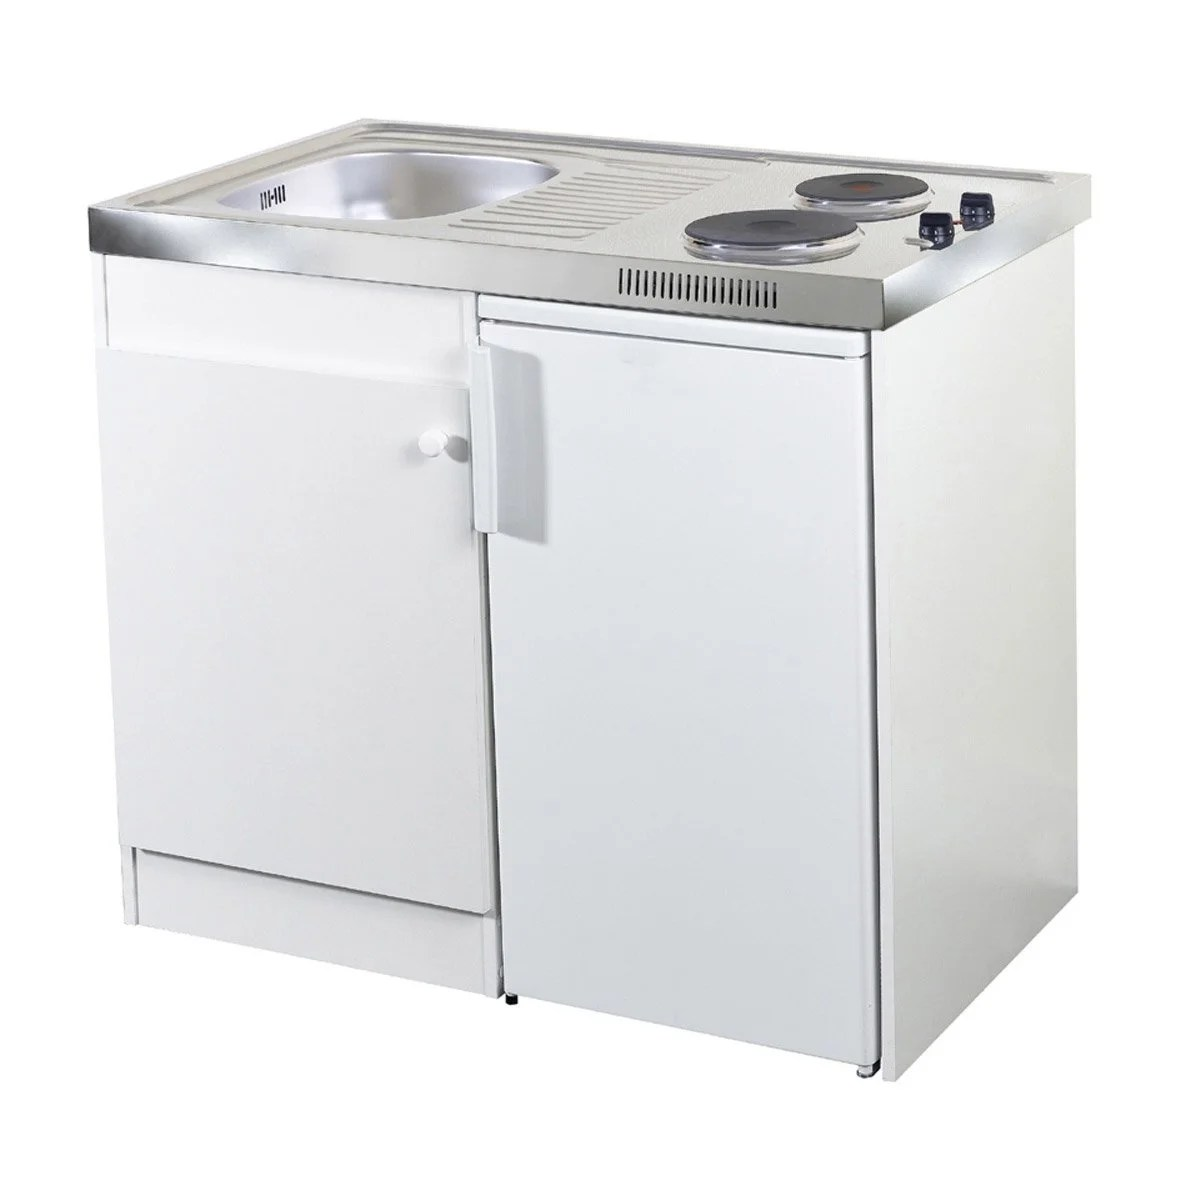 Kitchenette Leroy Merlin Kitchenette Electrique Blanc Spring H 92 5 X L 100 X P 60 Cm